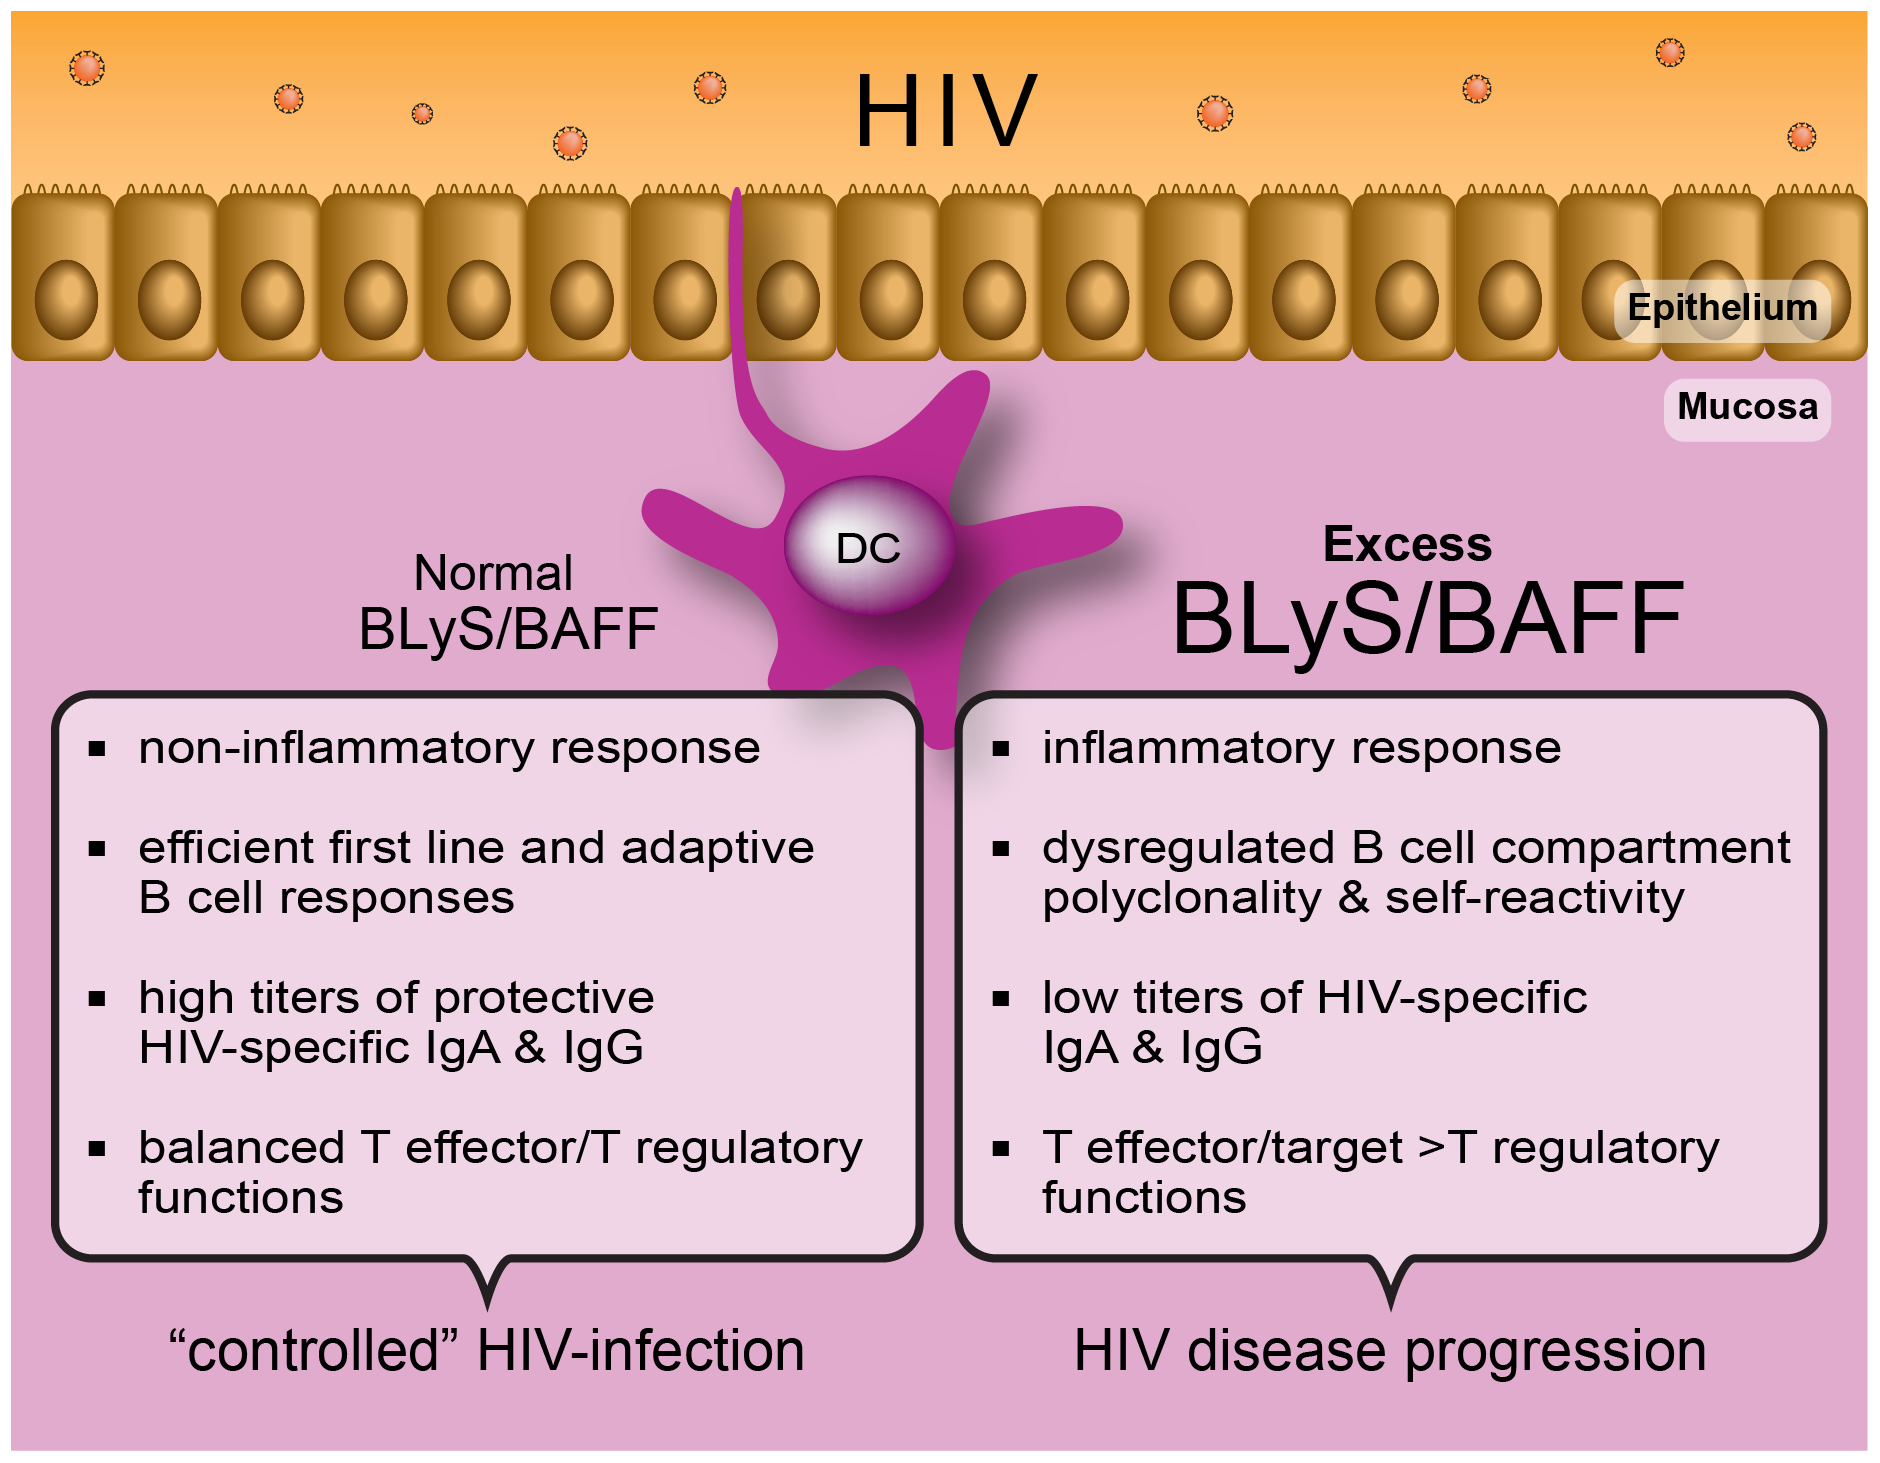 "The capacity to control immune homeostasis at mucosal sites, where the main battle against HIV takes place, is reflected by a normal ""non-inflammatory"" BLyS/BAFF expression status."